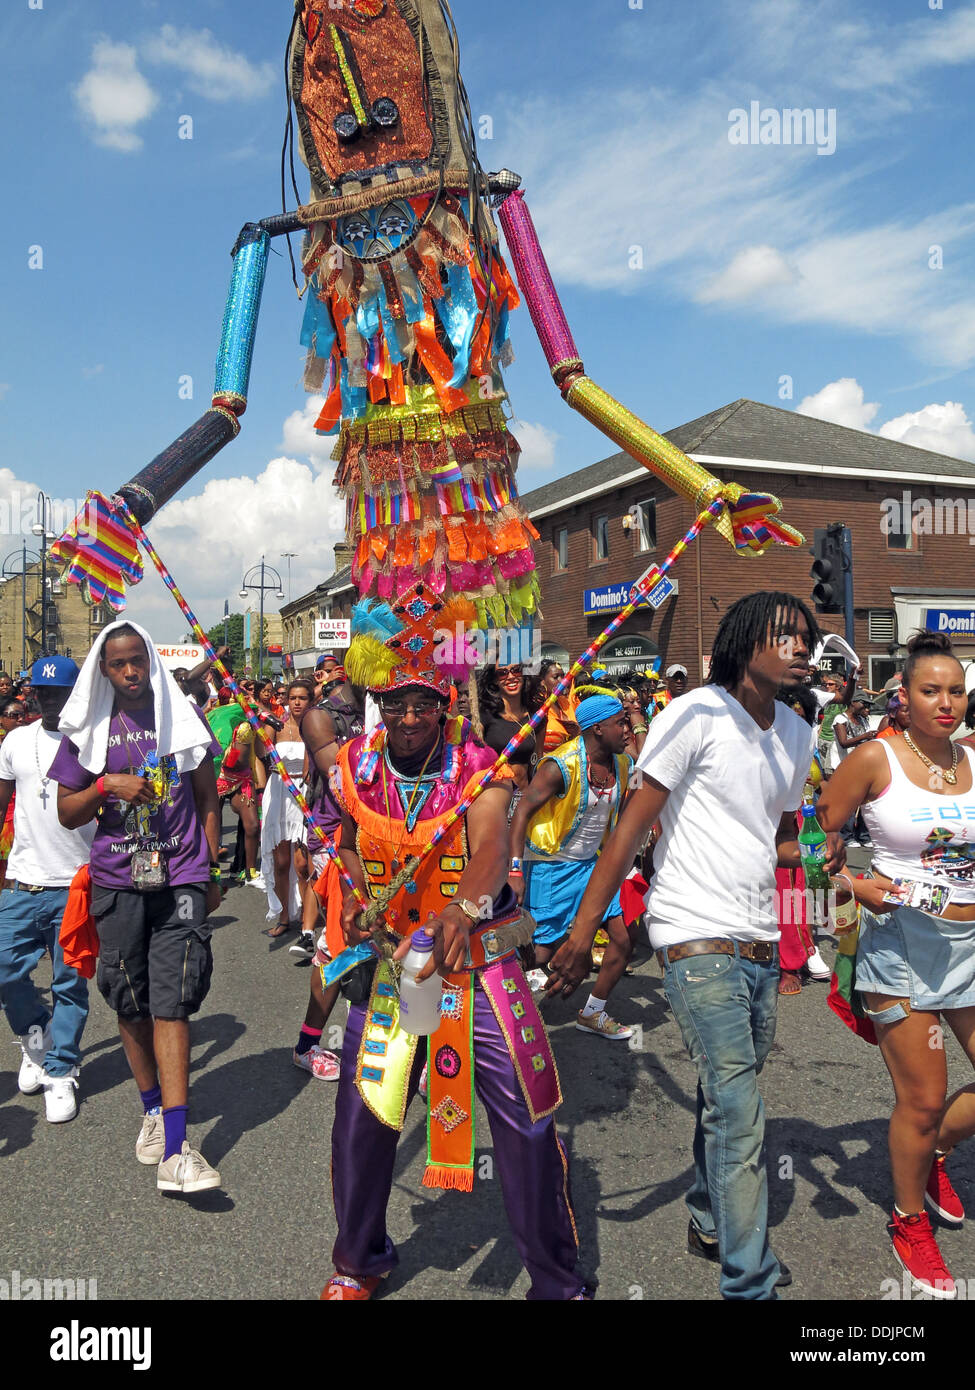 Kirklees,council,local,authority,LA,West,Yorkshire,England,English,UK,GB,Great,Britain,British,town,centre,Saturday,13th,July,event,HACCT,office,African-Caribbean,African,Caribbean,Afro,dancer,dancers,Masqueraders,costume,colourful,Hudawi,trust,diversity,diverse,events,leisure,activities,activity,Gotonysmith,sun,sunny,day,summer,center,13/07/2013,Greenhead,Park,Afro-Caribbean,costumes,colorful,culture,cultural,streets,parades,jab,jabs,jab-jabs,St,Johns,Rd,from,Willow,Lane,to,John,William,St,Johns,Rd,Market,Place,Cloth,Hall,St,from,Market,Place,to,St,from,Cloth,Hall,St,to,Westgate,from,to,Trinity,St,johns,Yorks,WestYorks,HD11NU,1NU,Buy Pictures of,Buy Images Of